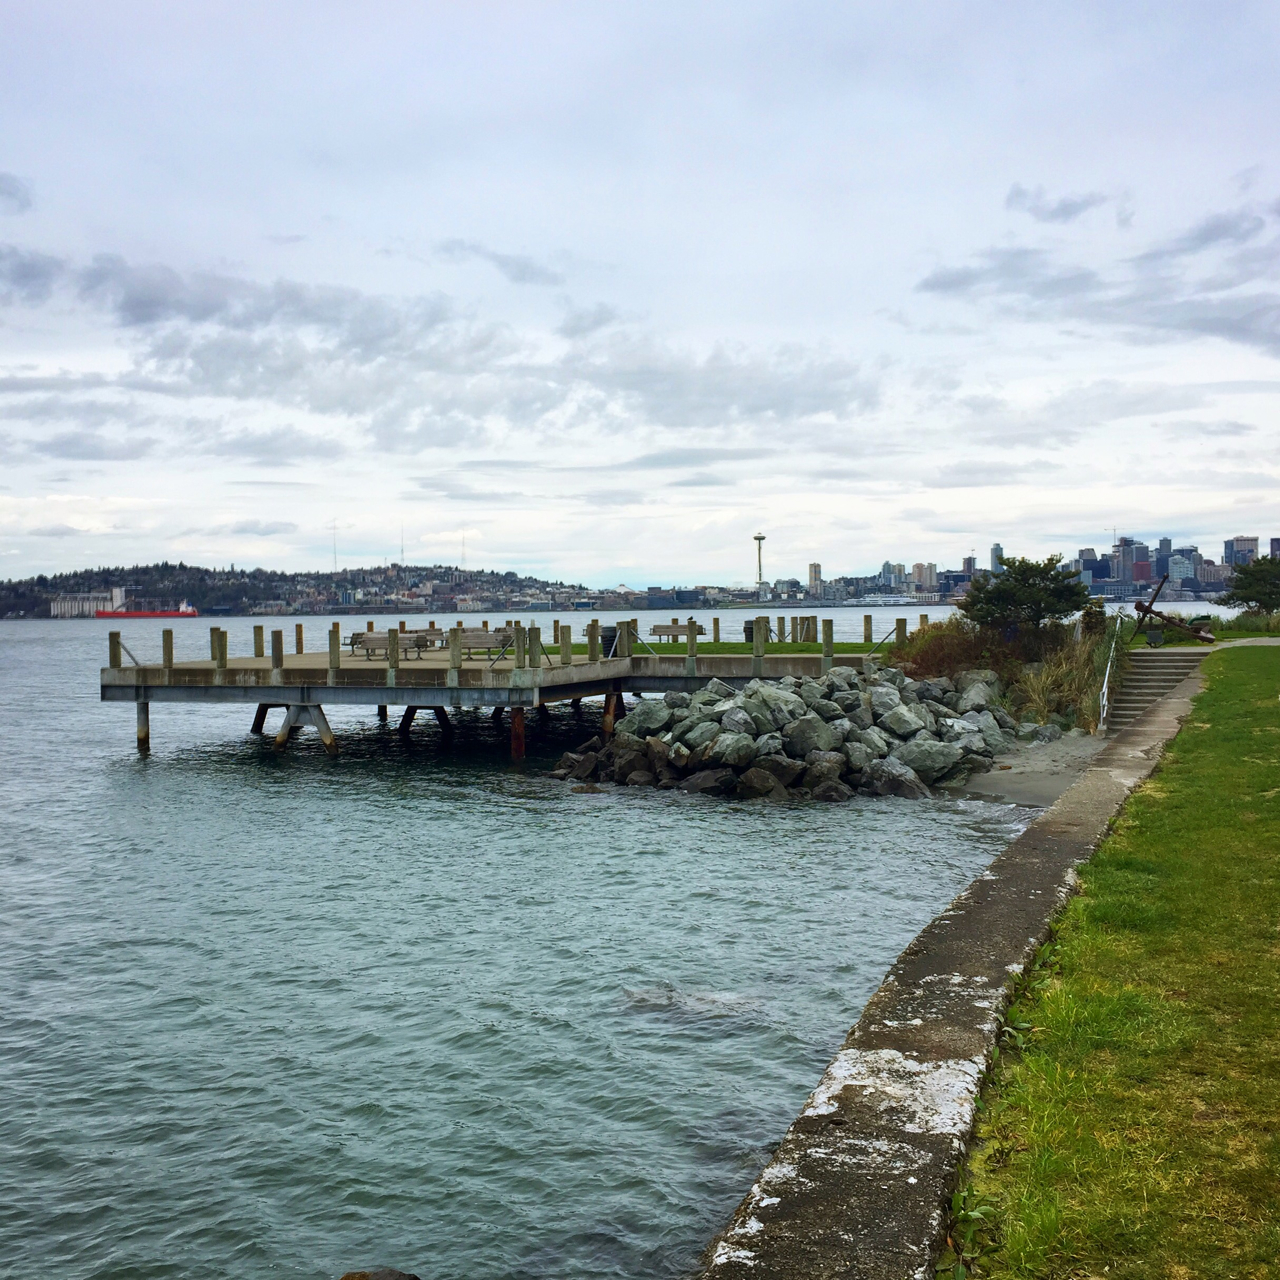 View of one of the docks around Alki Beach